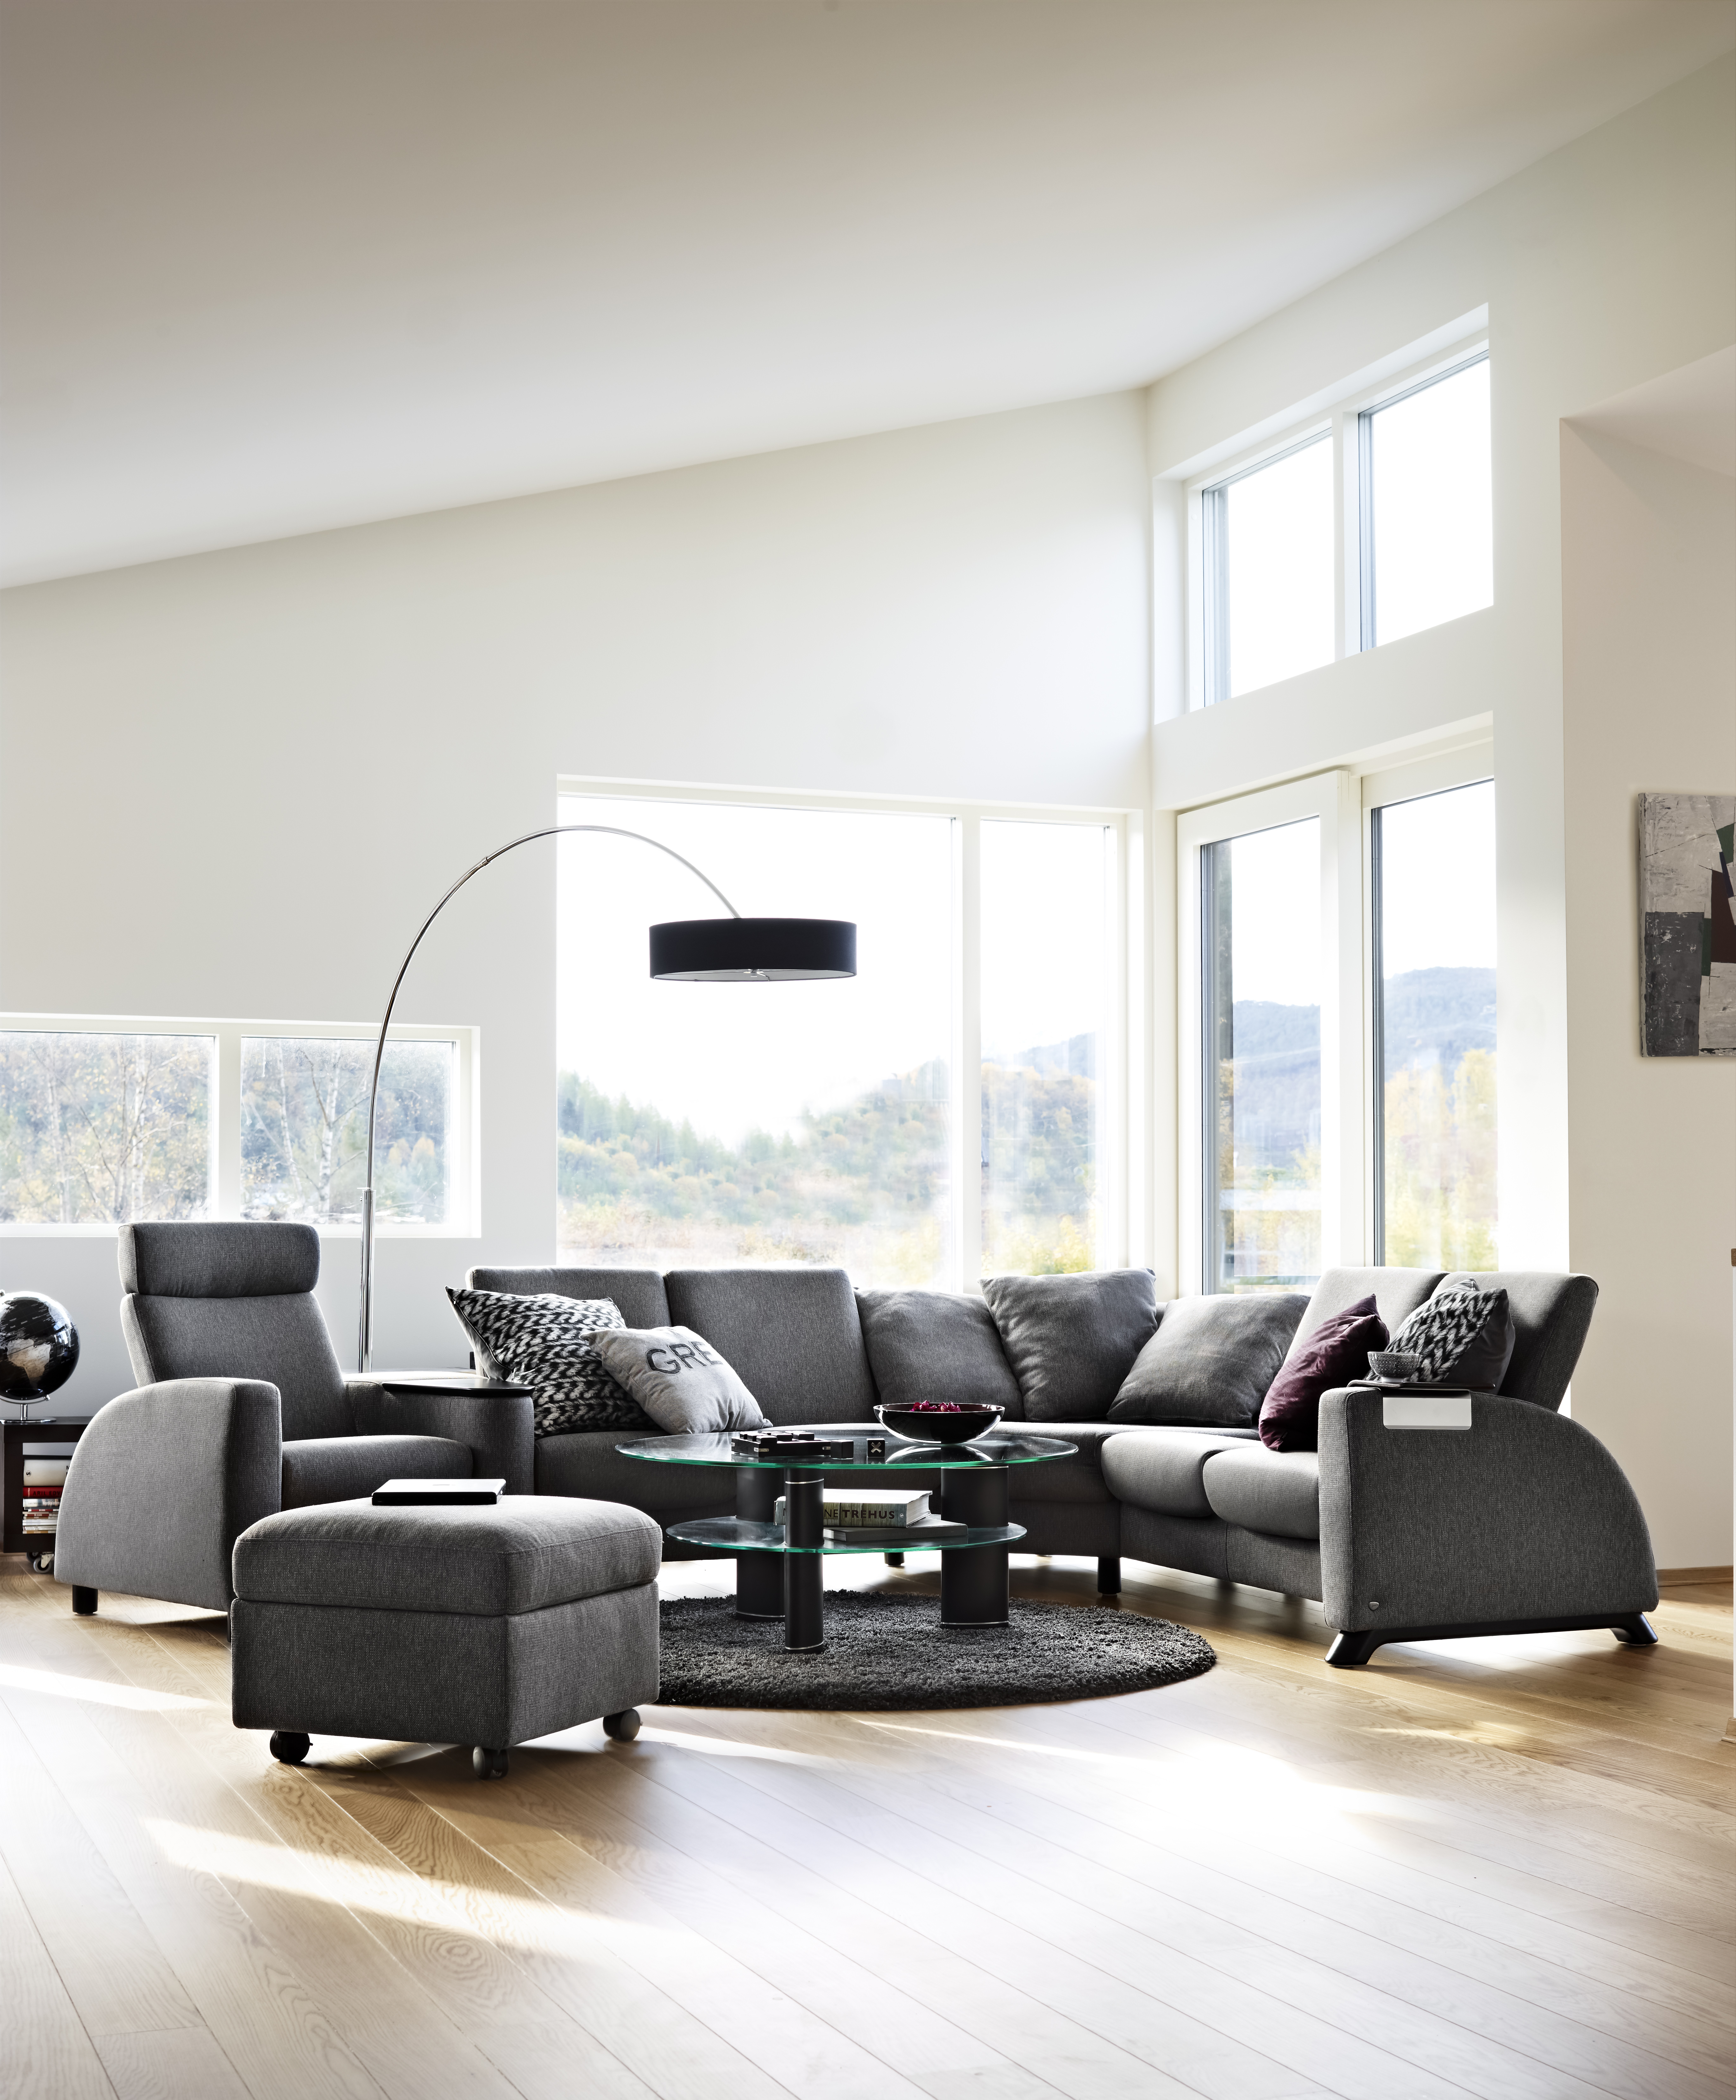 Arion Sectional with 1 Seater shown.